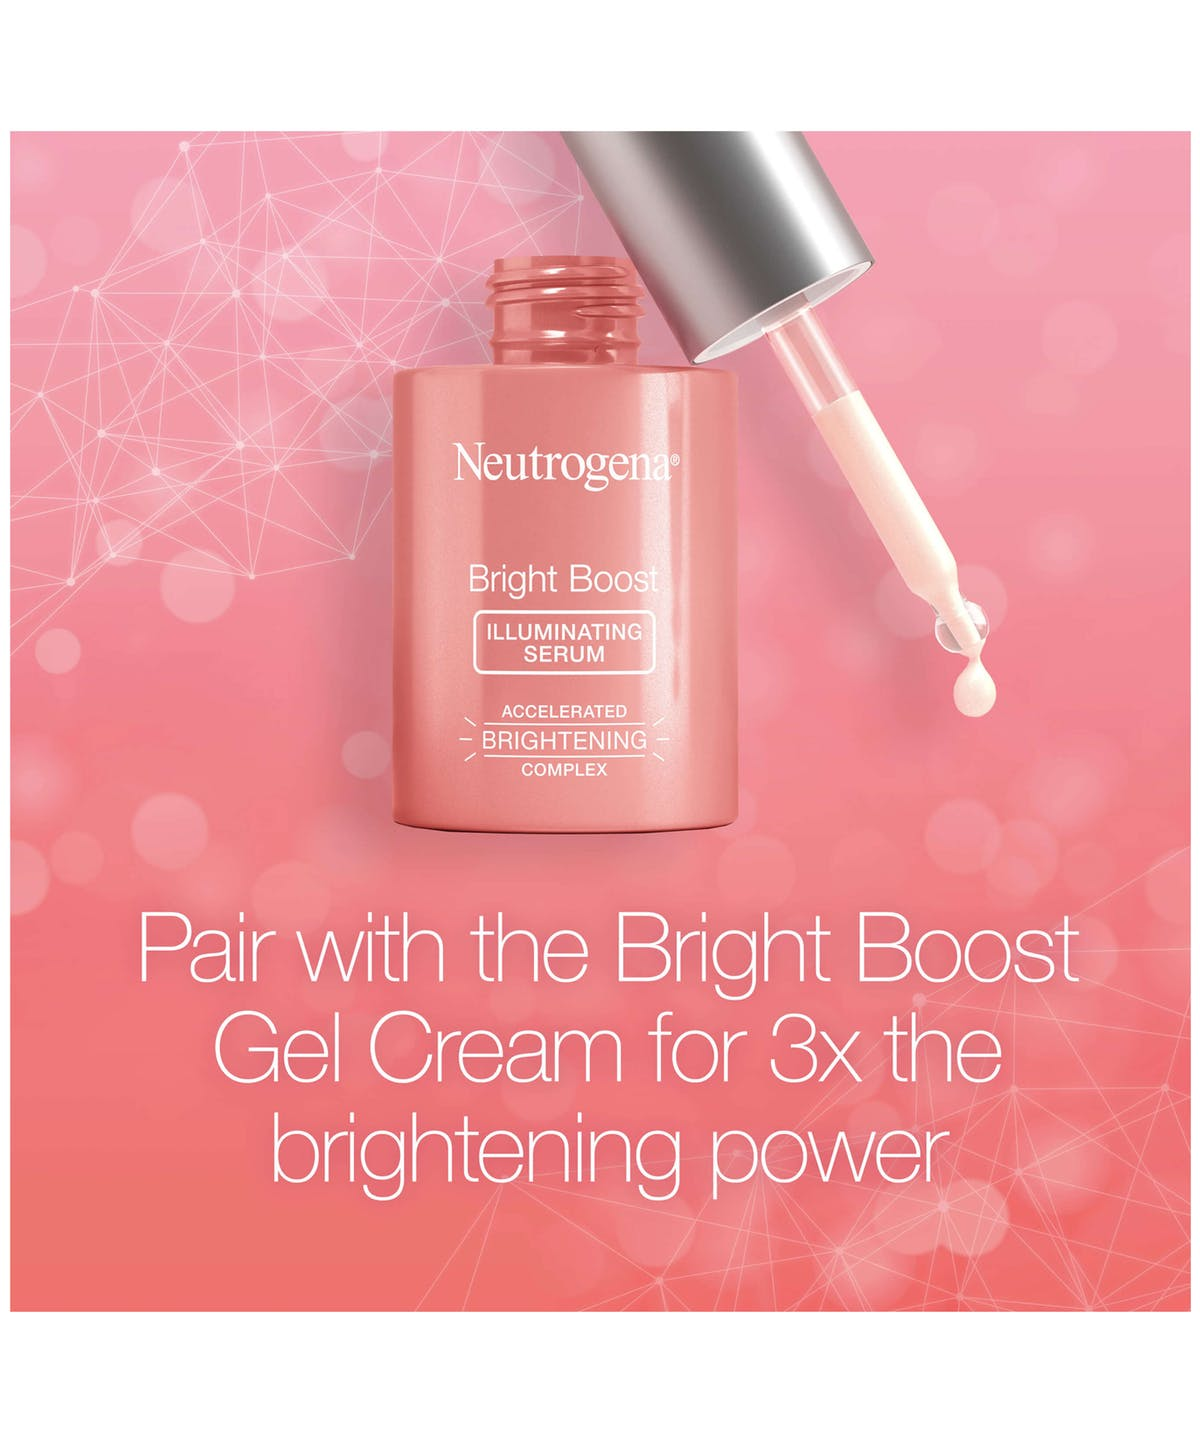 Neutrogena Bright Boost Serum